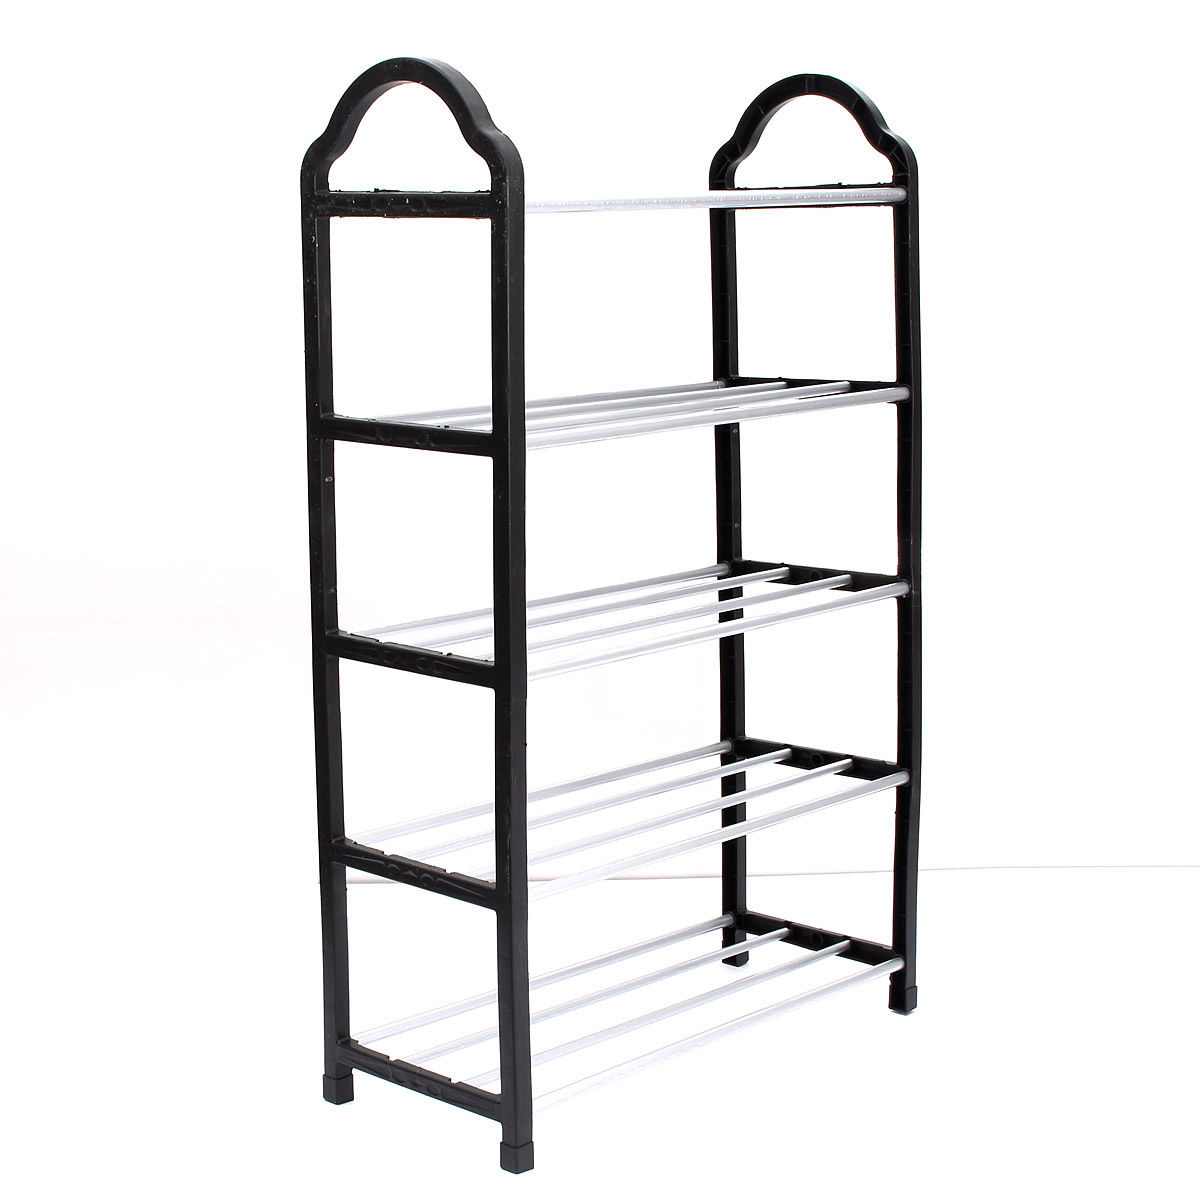 купить  5 Tier Home Storage Organizer Cabinet Shelf Space Saving Shoe Tower Rack Stand Black  онлайн